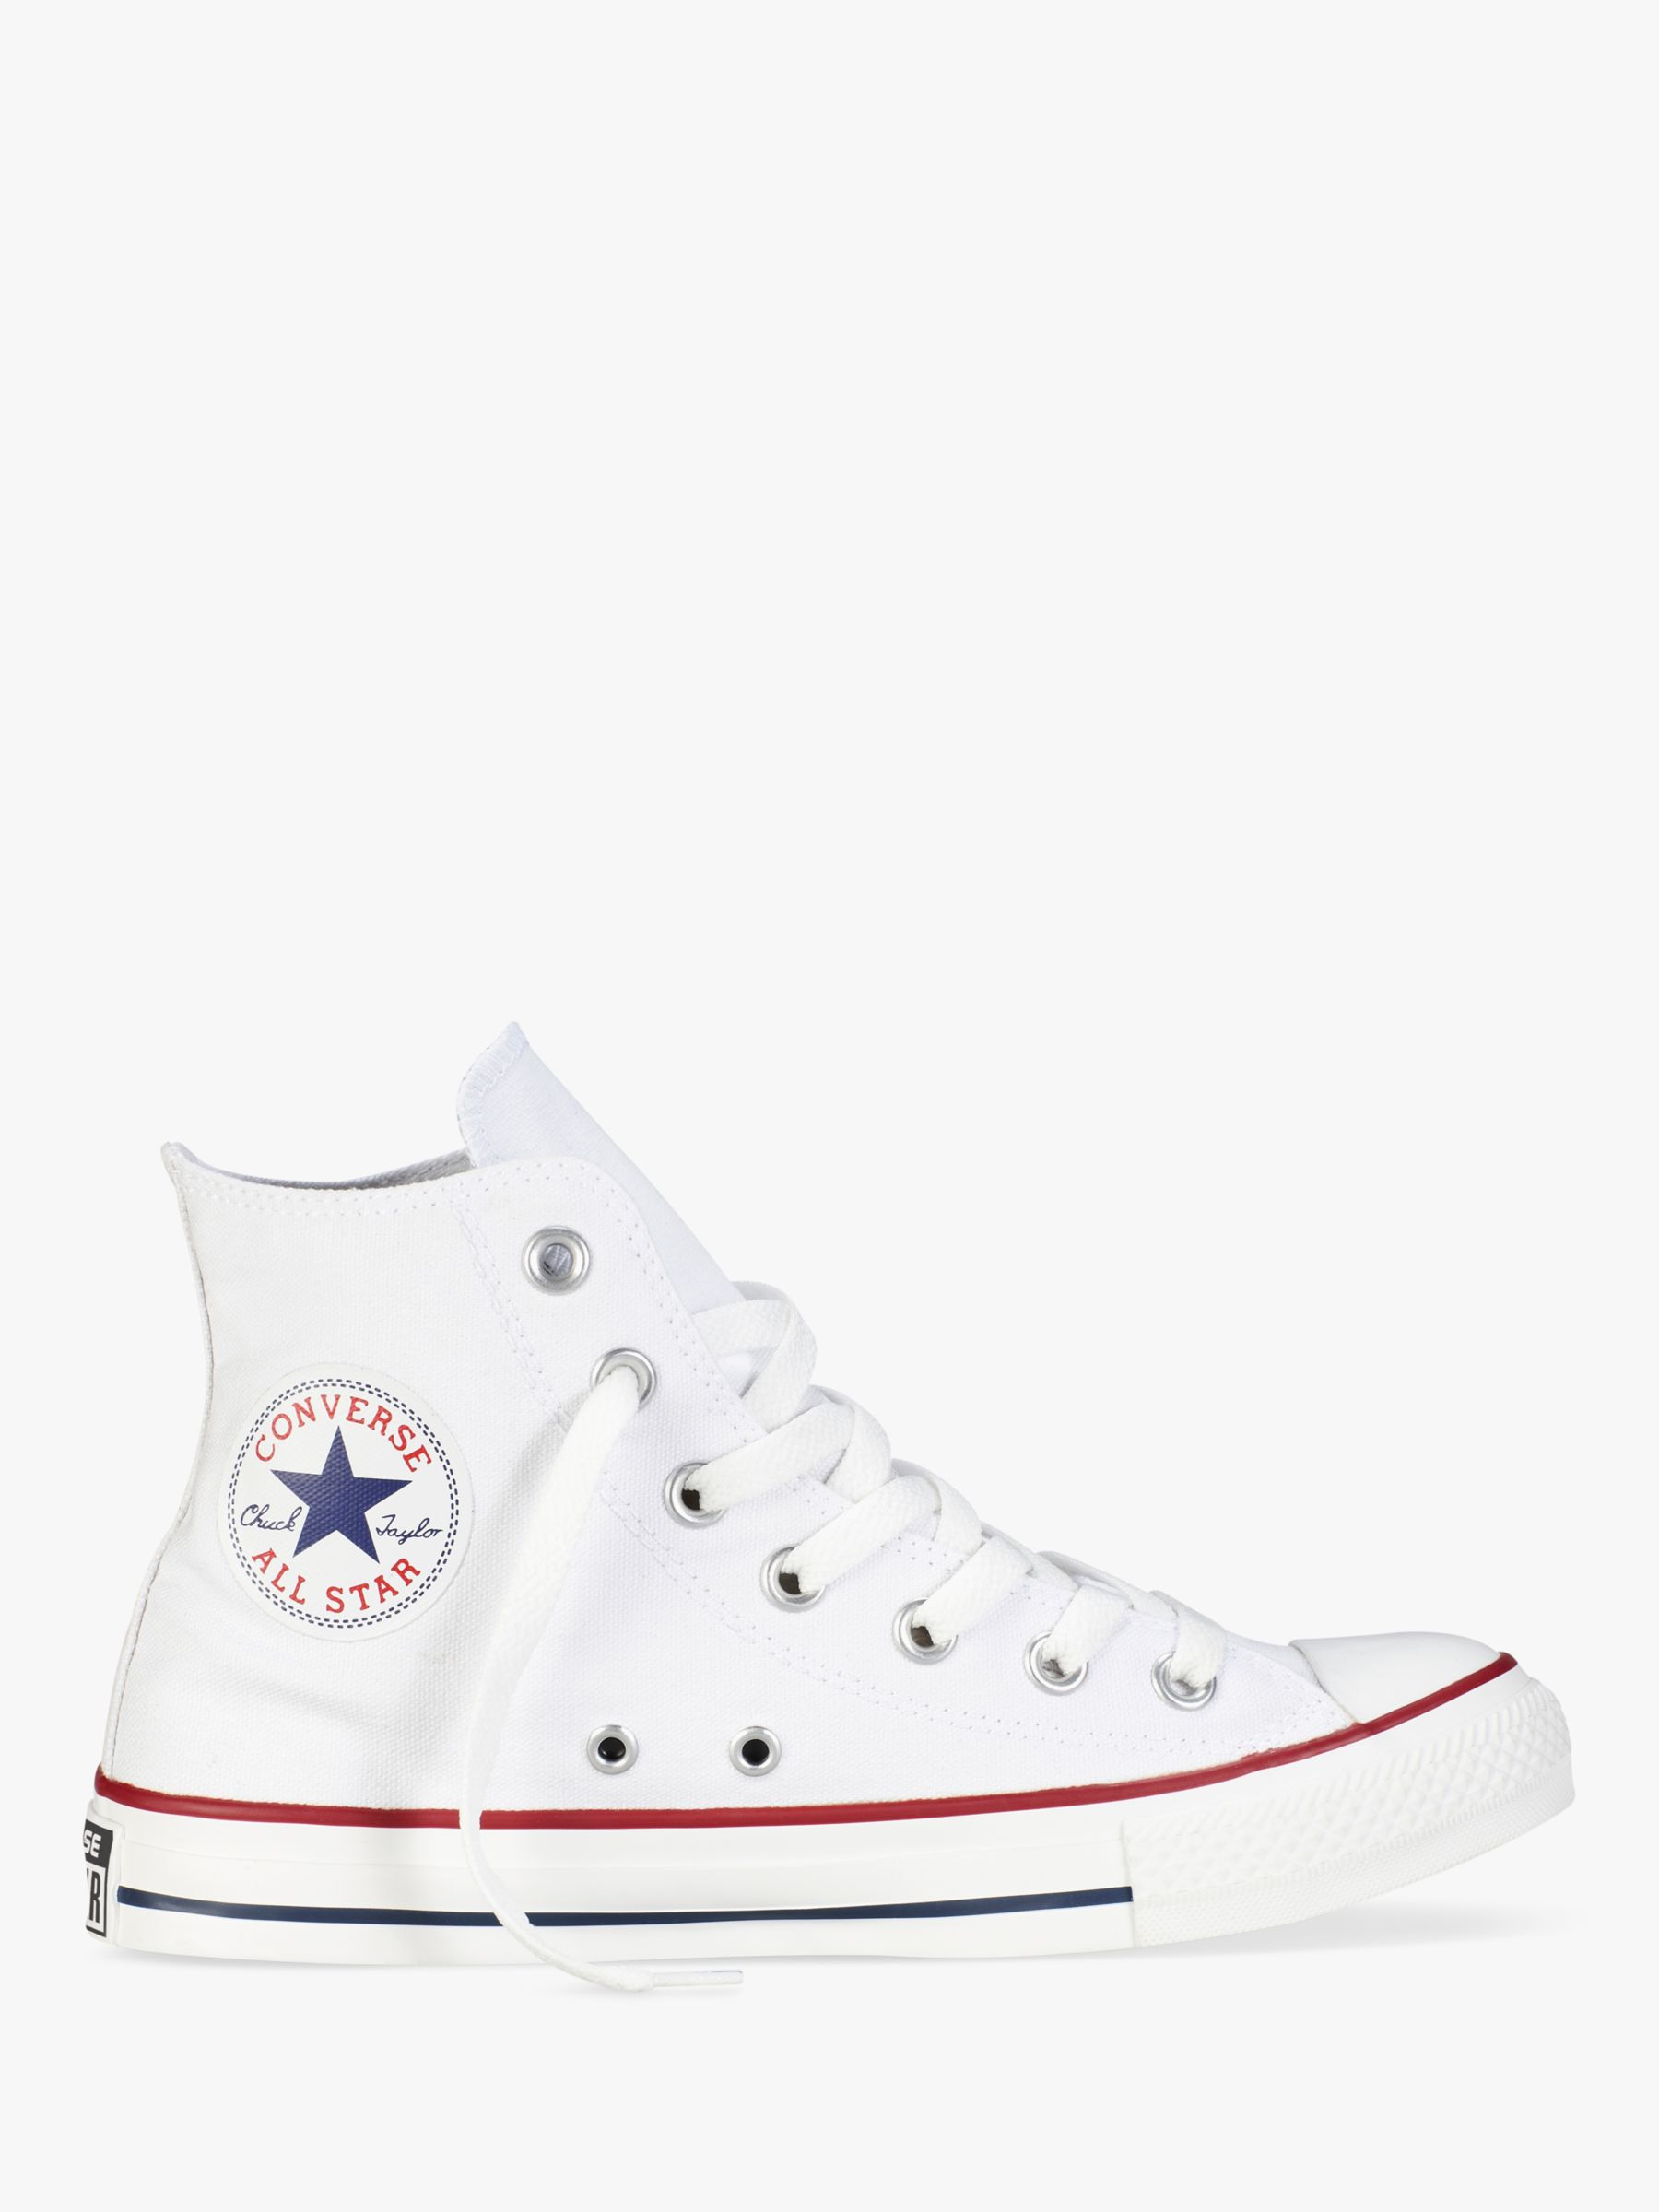 Converse Chuck Taylor All Star Canvas Hi-Top Trainers